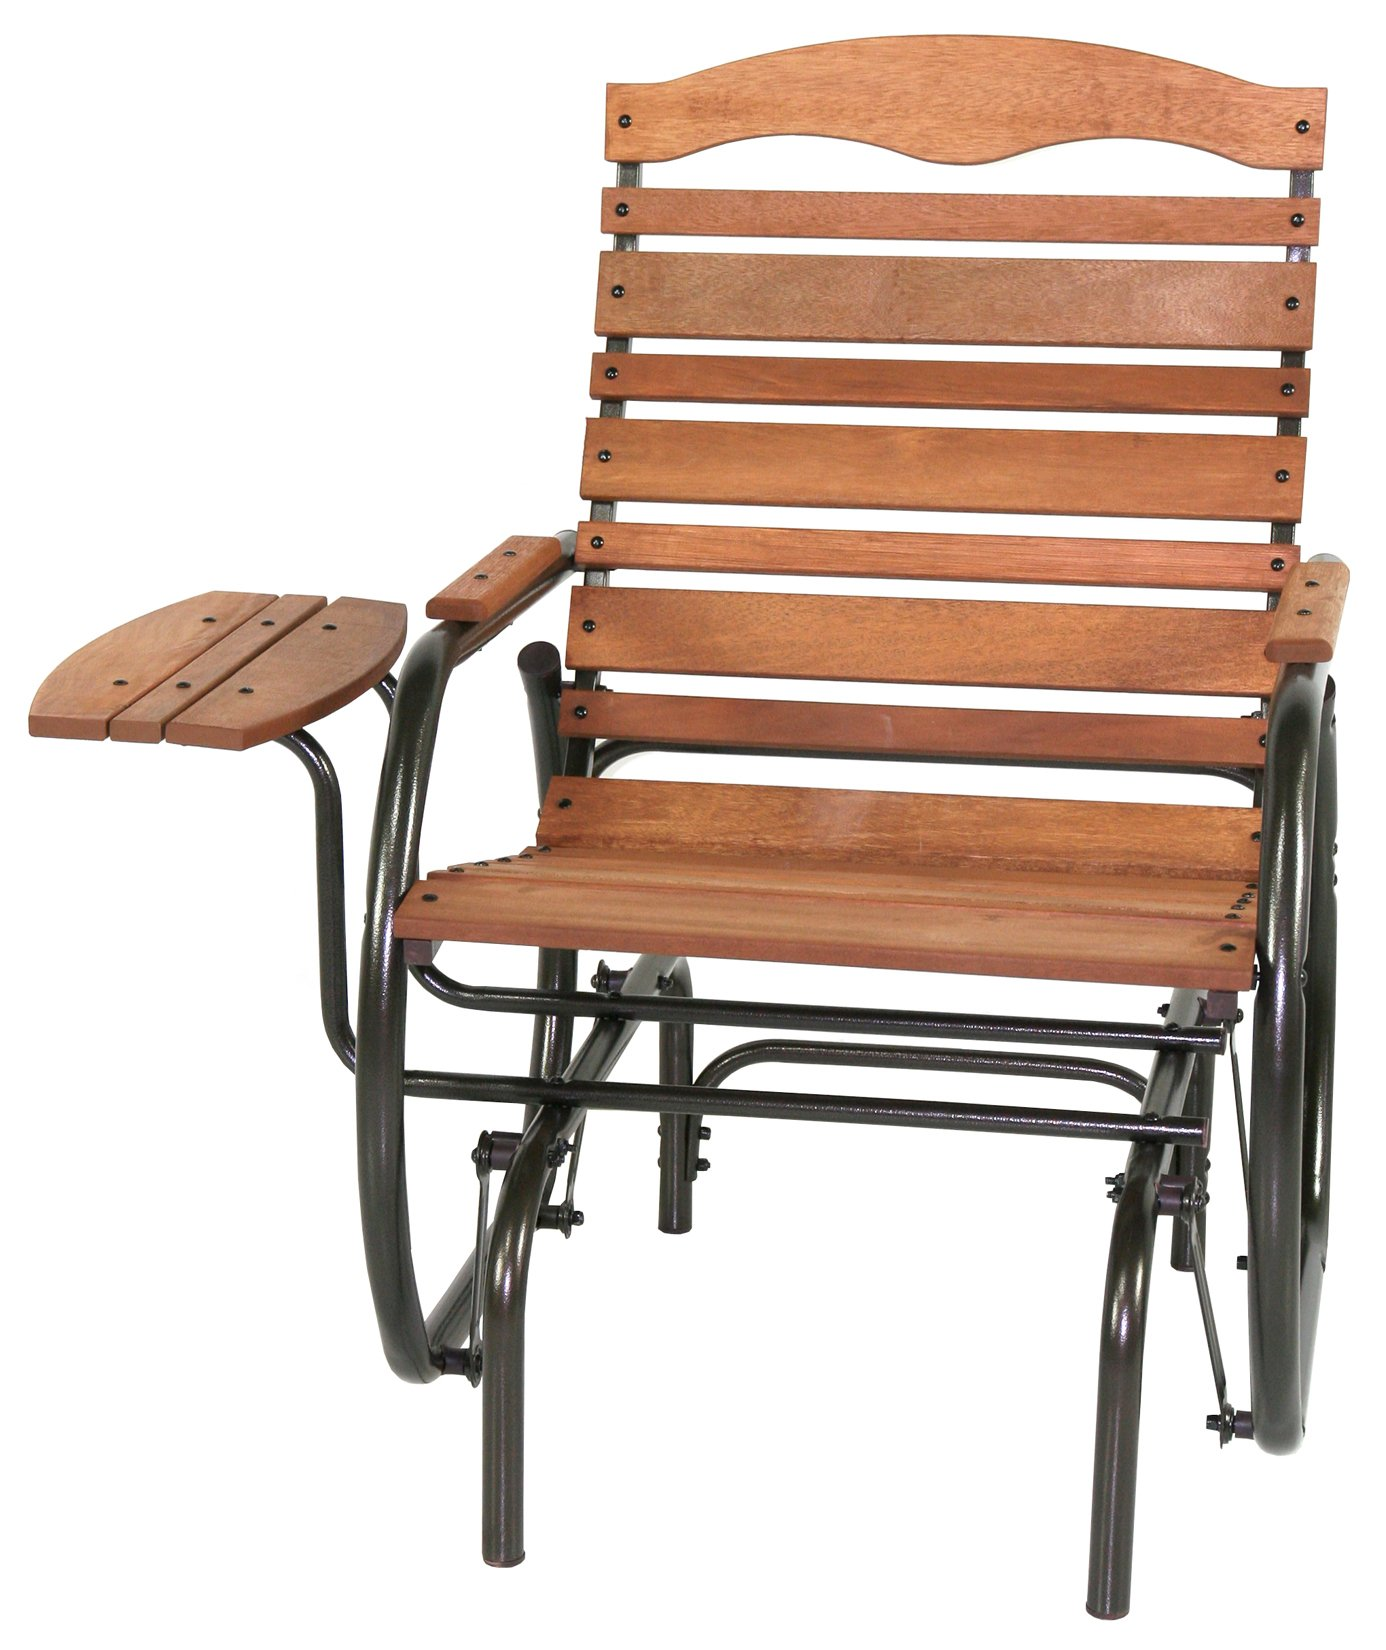 Jack Post CG-21Z Country Garden Glider Chair with Tray, Bronze by Jack Post